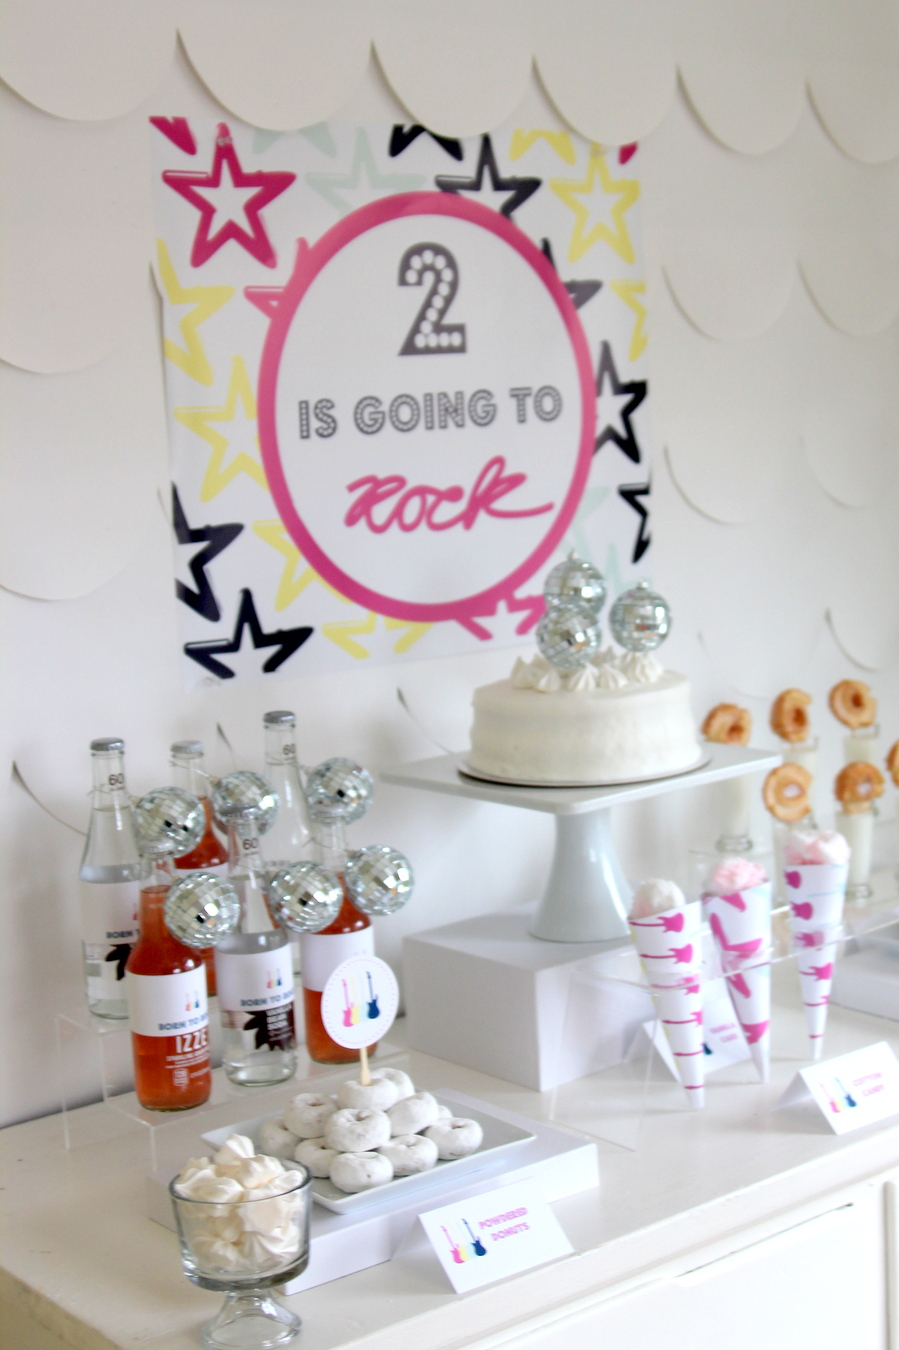 Time to party like a rock star! This sweet rock star birthday party includes all sorts of party ideas- like this sweet treat table set up!